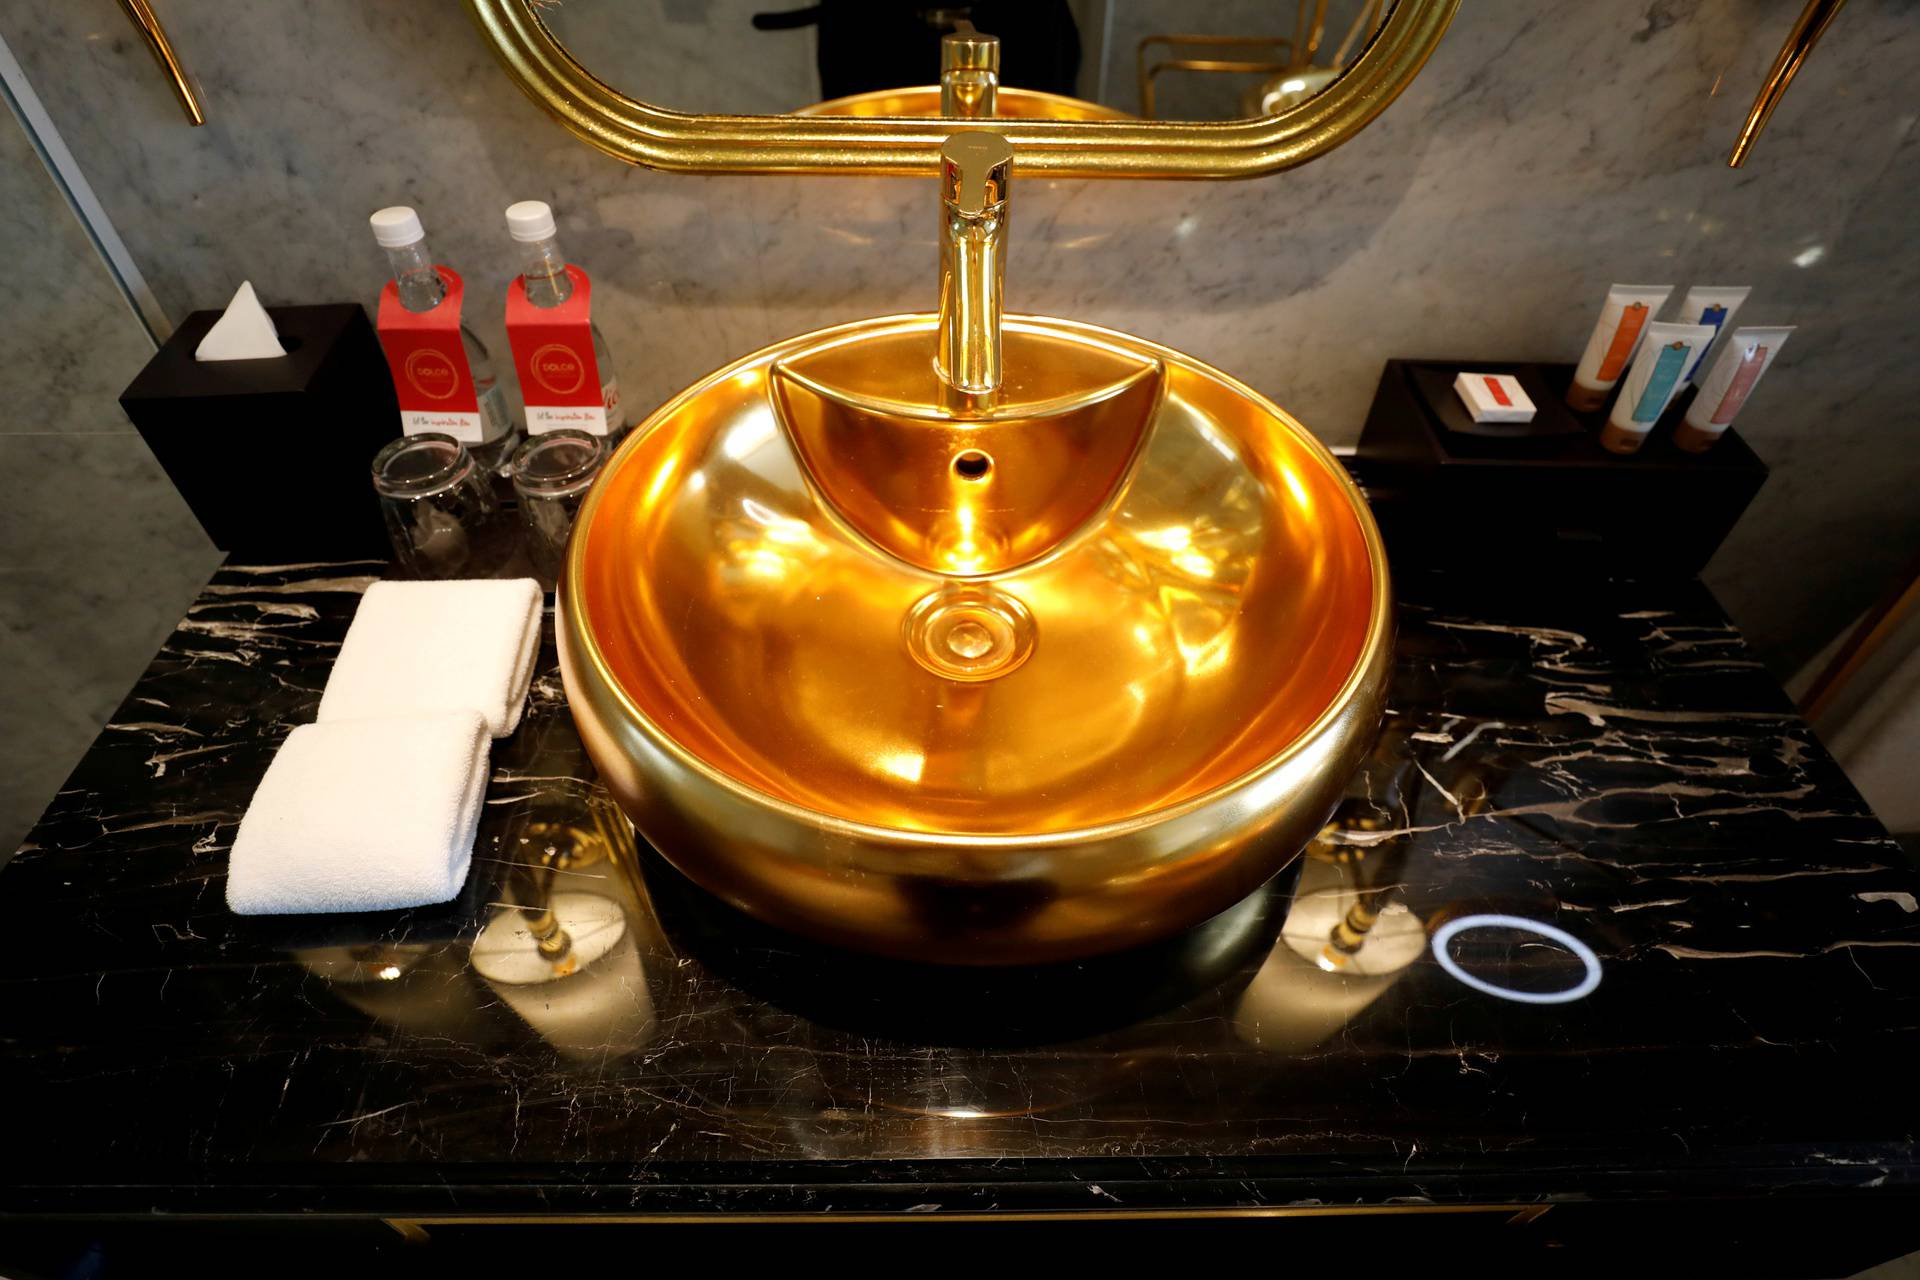 FILE PHOTO: A gold-plated bathroom sink is seen in the newly inaugurated Dolce Hanoi Golden Lake luxury hotel, after the government eased a nationwide lockdown following the global outbreak of the coronavirus disease (COVID-19), in Hanoi, Vietnam